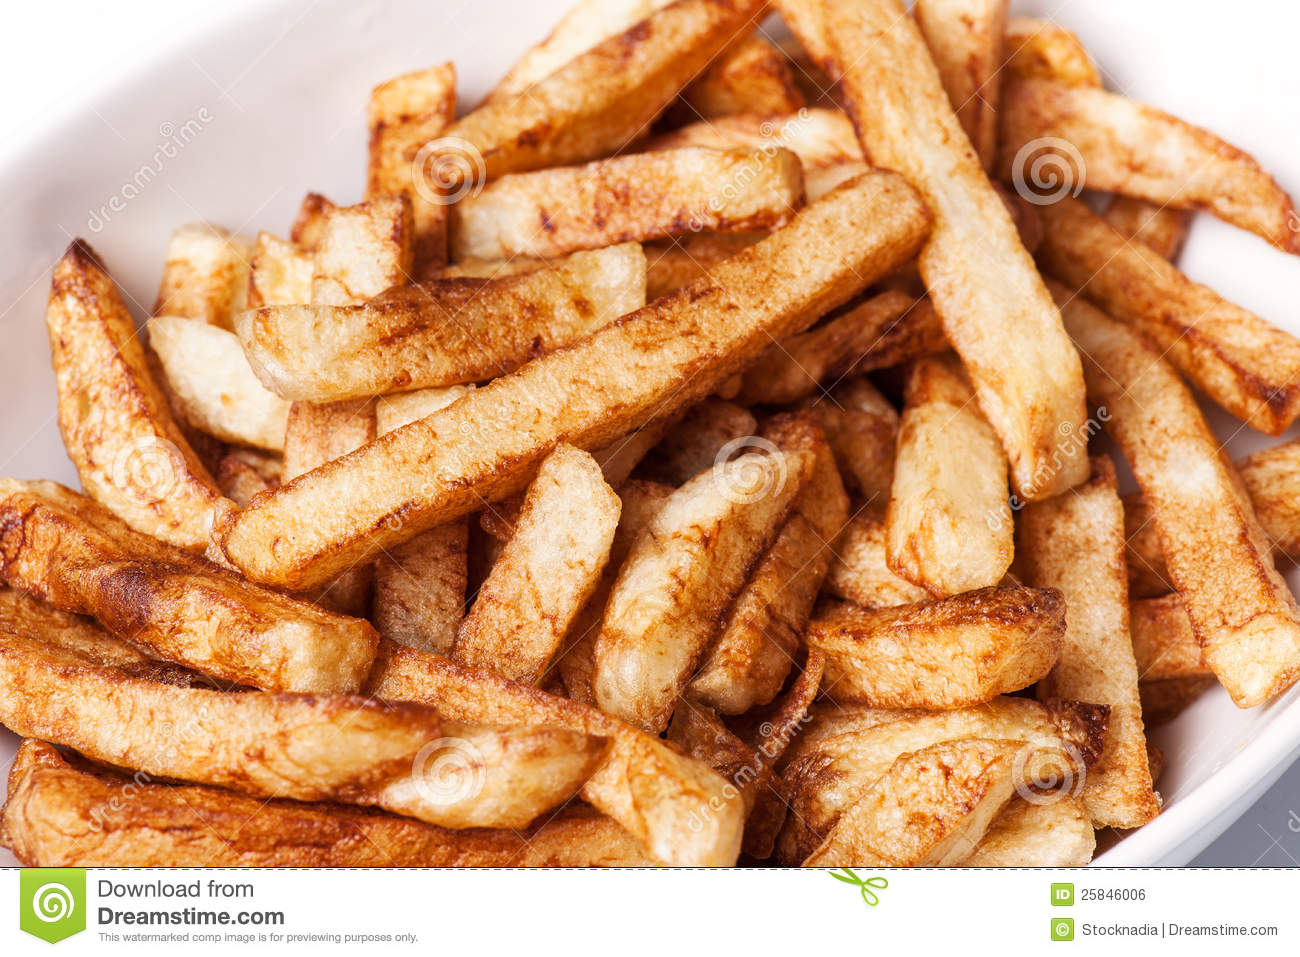 how to make french fries from potatoes